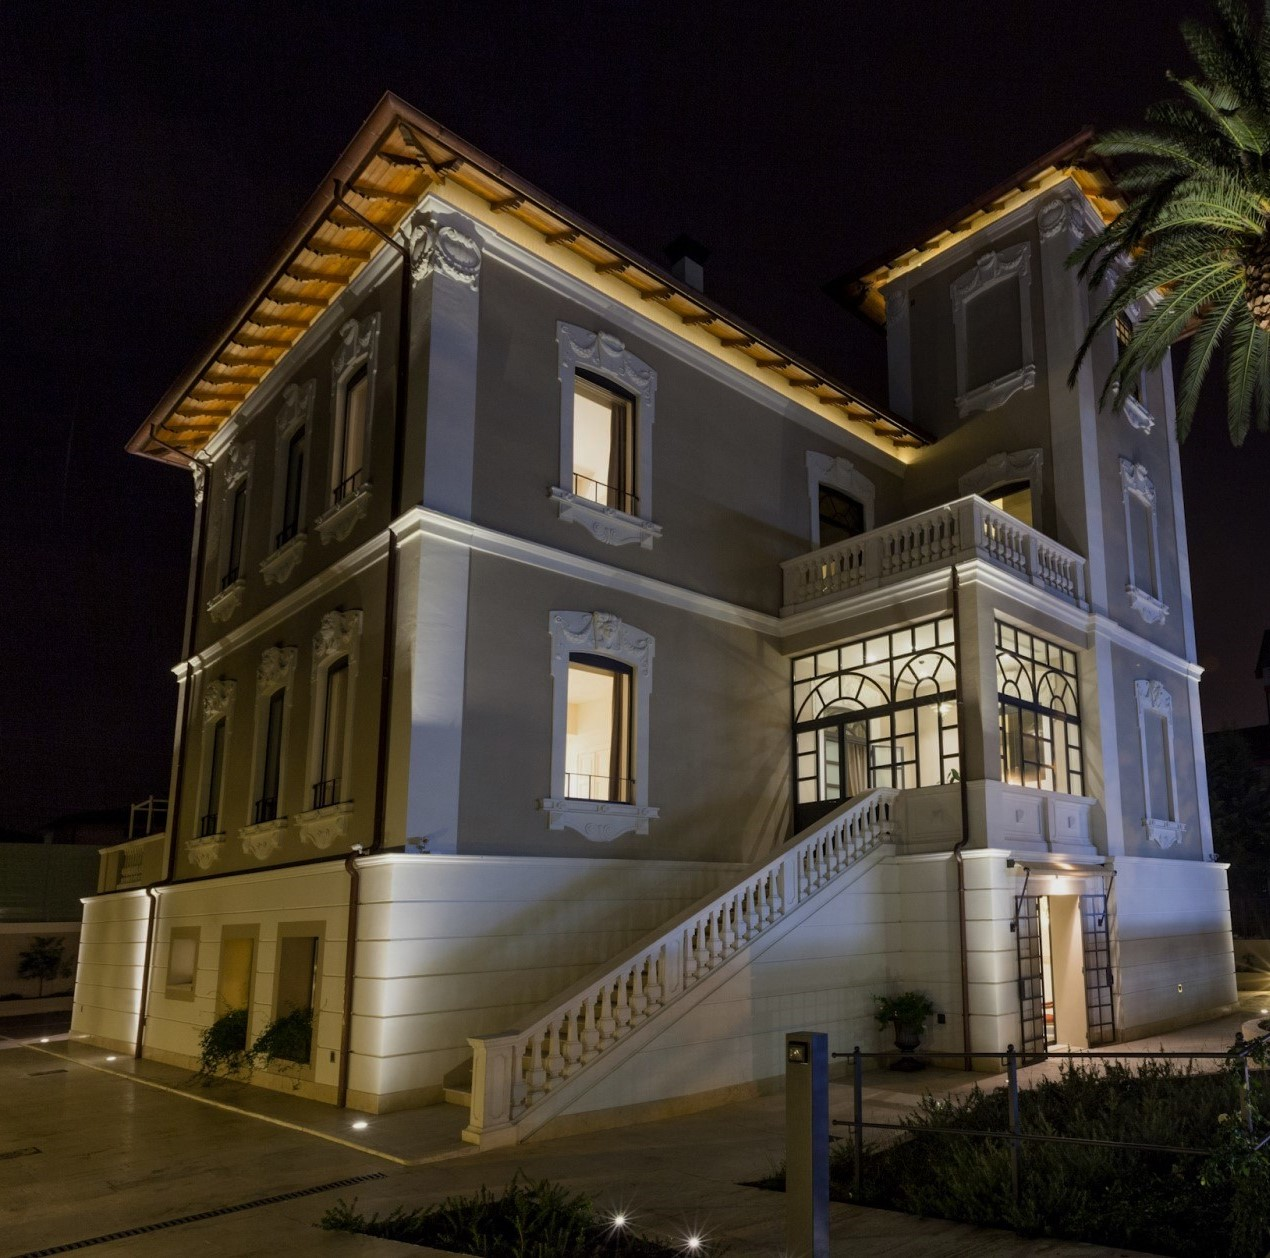 Hotel 900 Giulianova 4 stelle, 4 star, 4 étoiles Luxury Business Leisure Vacanza